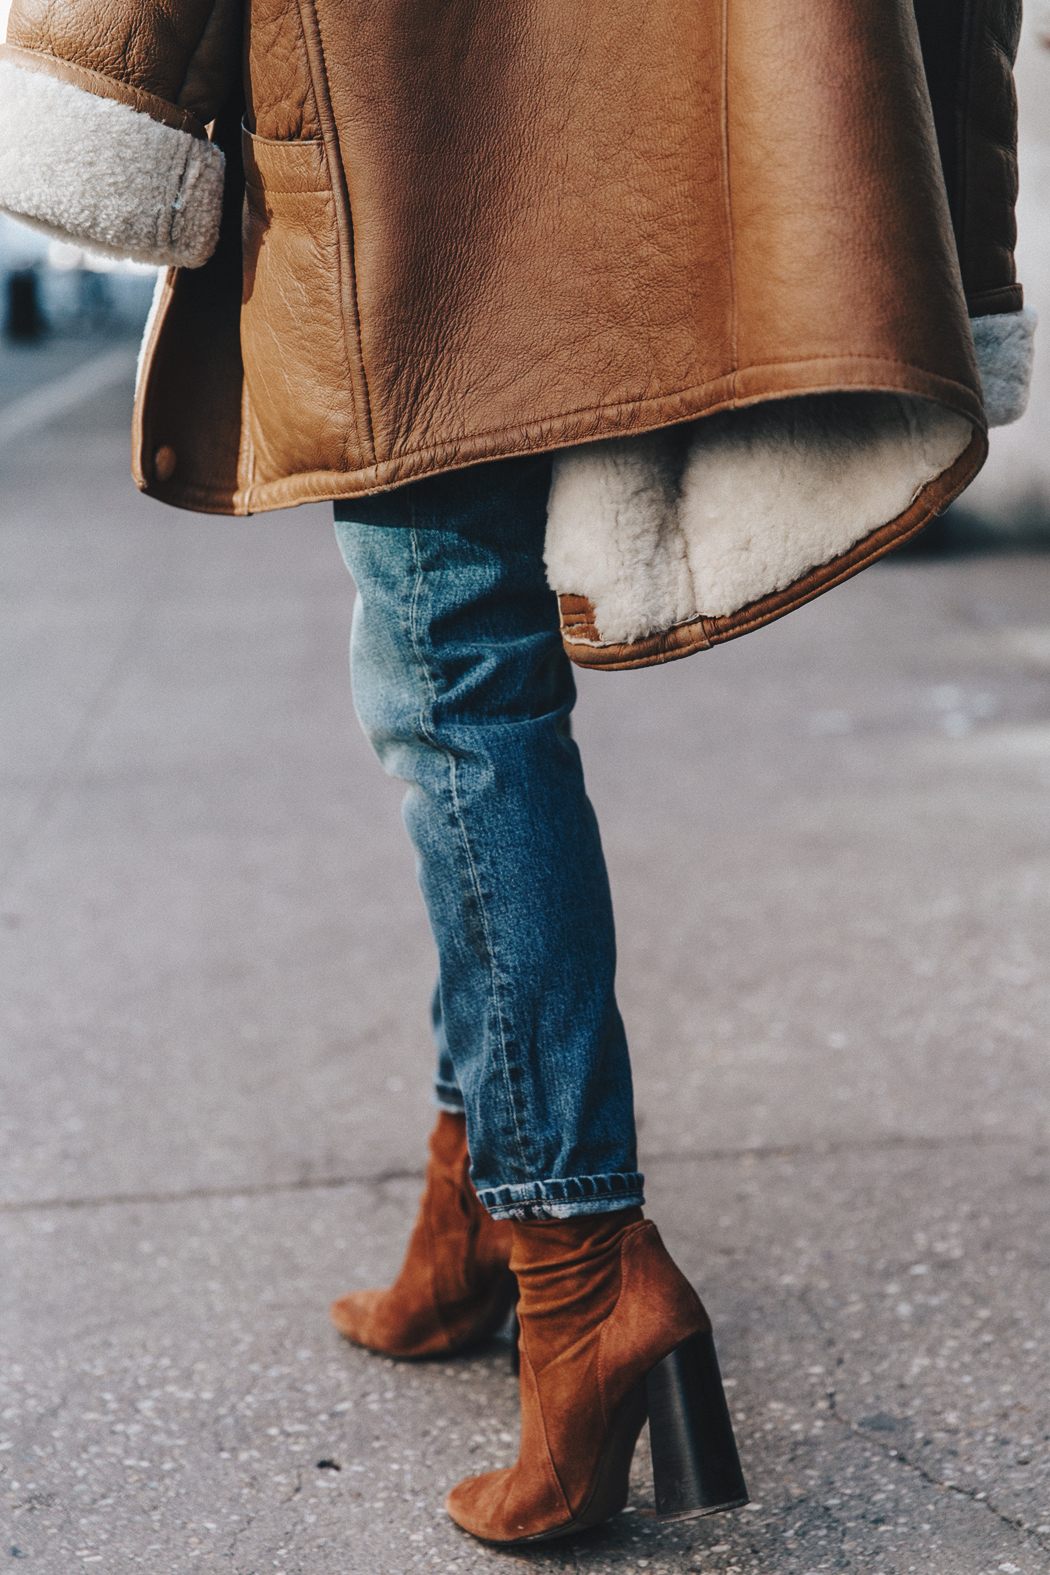 Denim_Lover-Topshop_Jeans-Vintage_Coat-Grey_Scarf-Brown_Booties-Navy_Sweayer-Denim_Shirt-Braids-NYFW-New_York_Fashion_Week-Street_style-Celine_Bag-Vestiaire_Collective-60